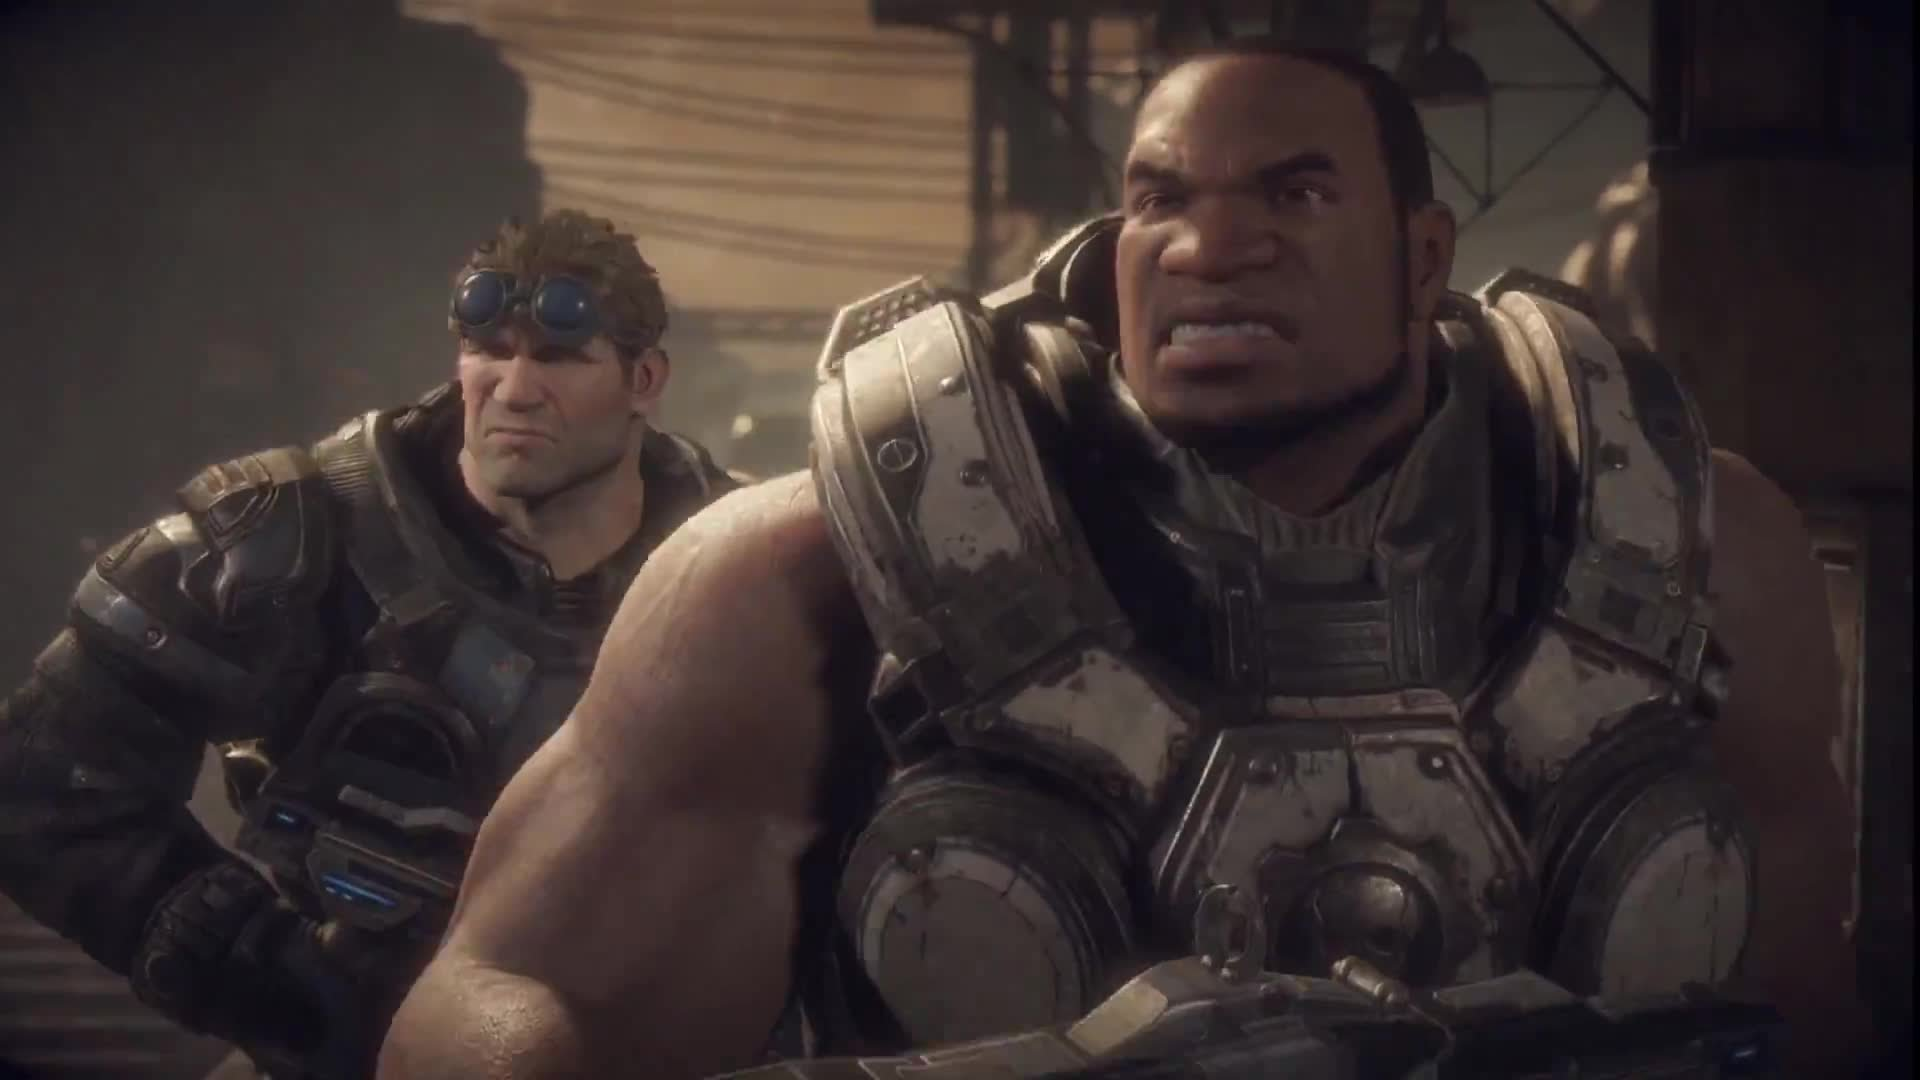 gears of war cole train a